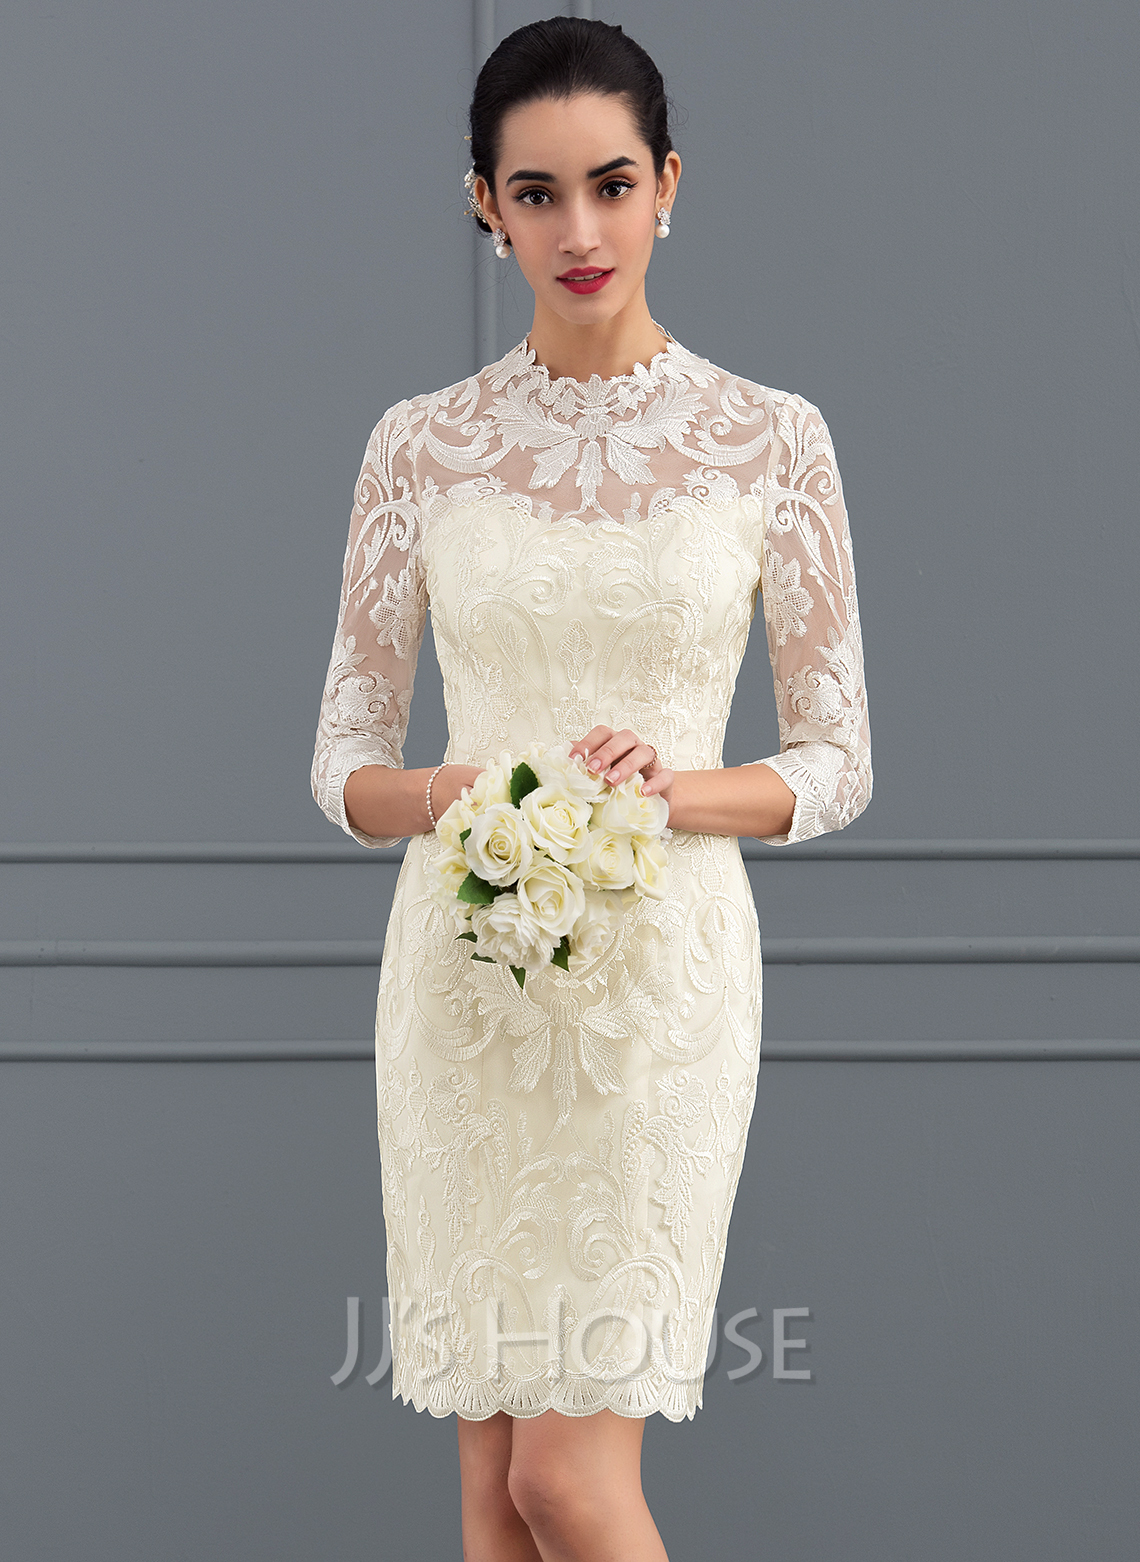 09e68d807e8 Sheath Column High Neck Knee-Length Lace Wedding Dress (002127281 ...